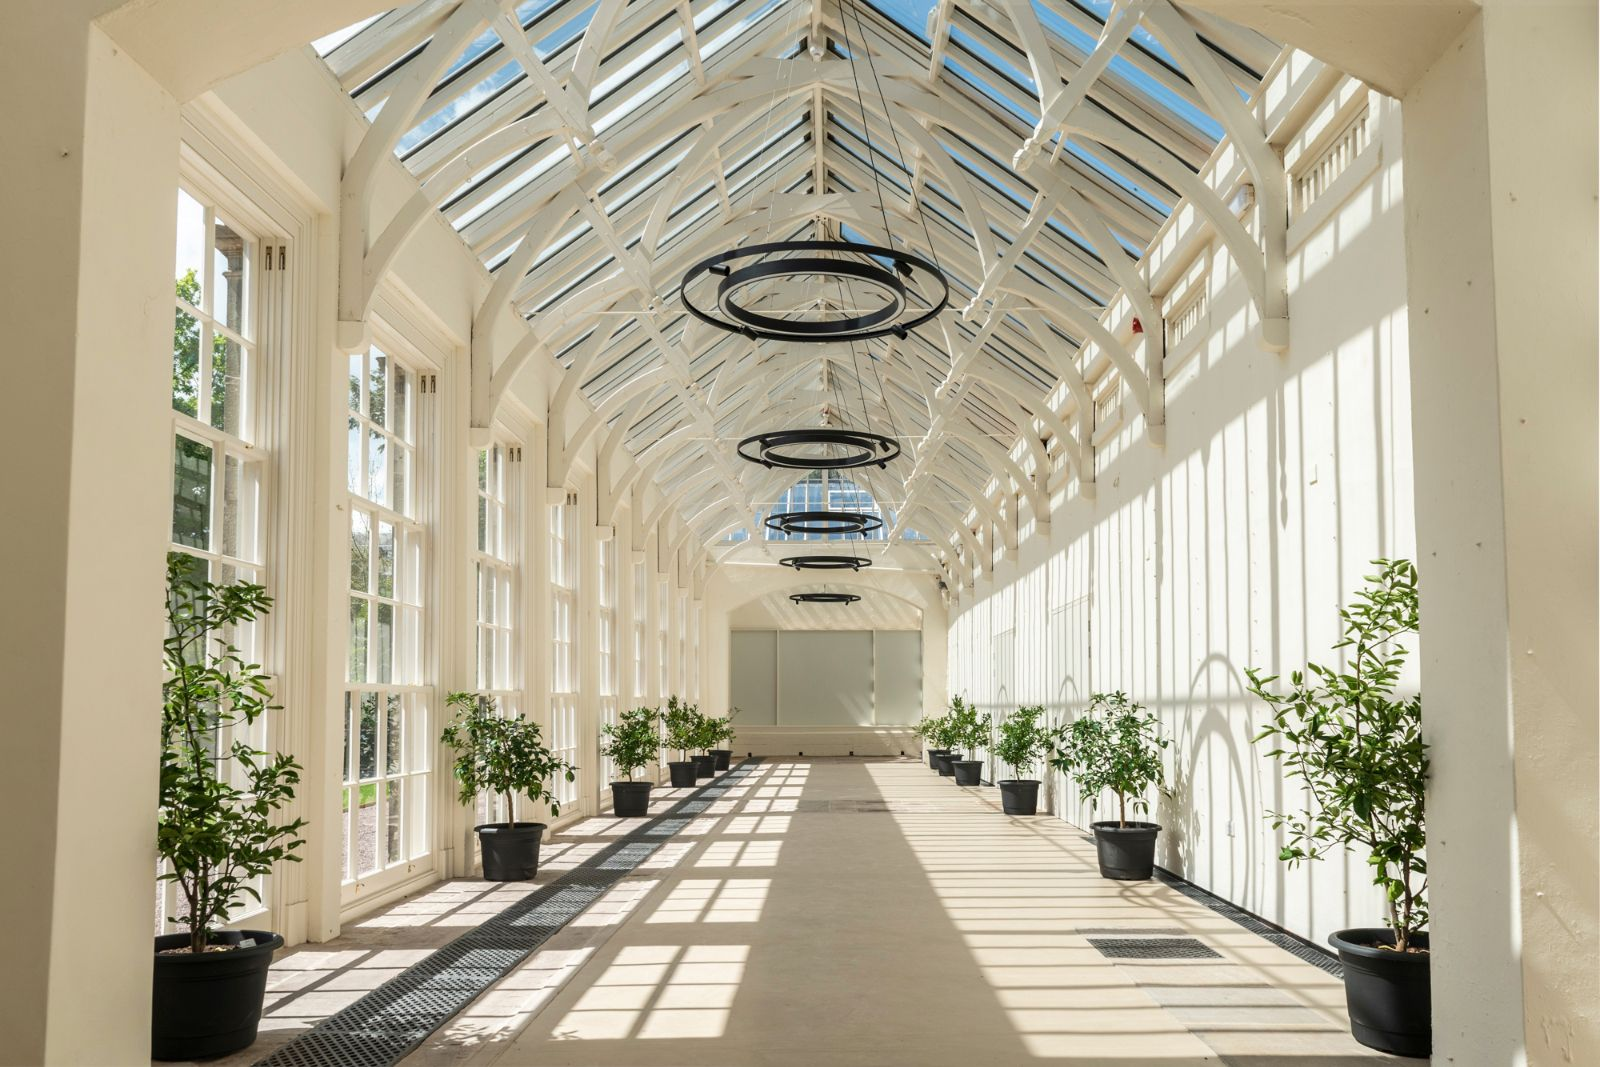 Ingestre Orangery recommended by Margaret Mulholland in Staffordshire and the West Midlands